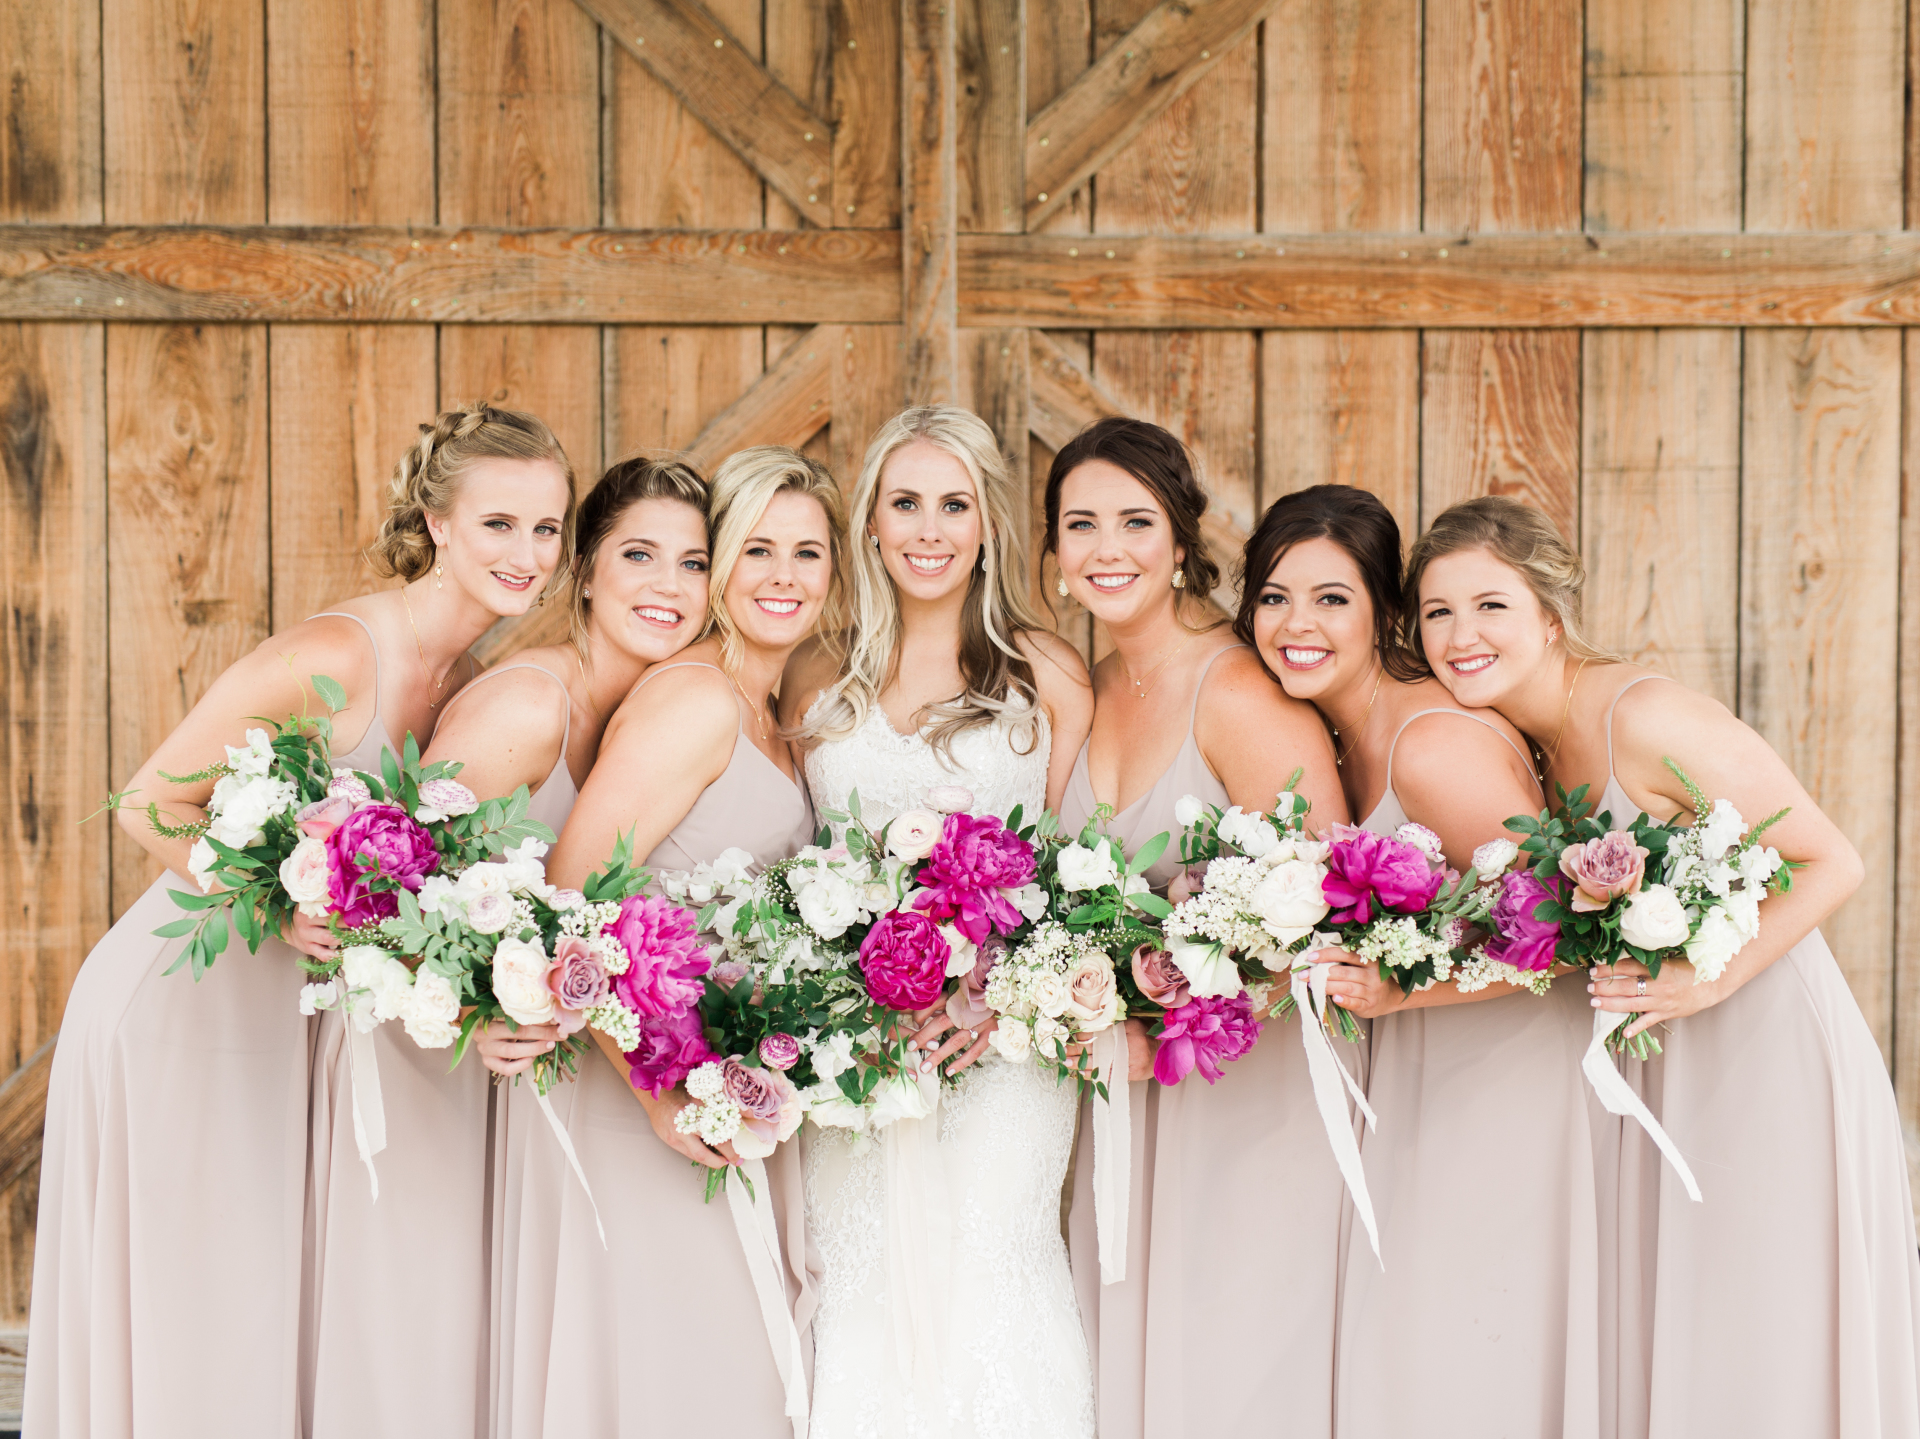 Chic Fleur Weddings and Events, Dallas Wedding Planner, Fort Worth Wedding Planner, Dallas Wedding, Fort Worth Wedding, Venue at Waterstone, Celina Wedding Planner